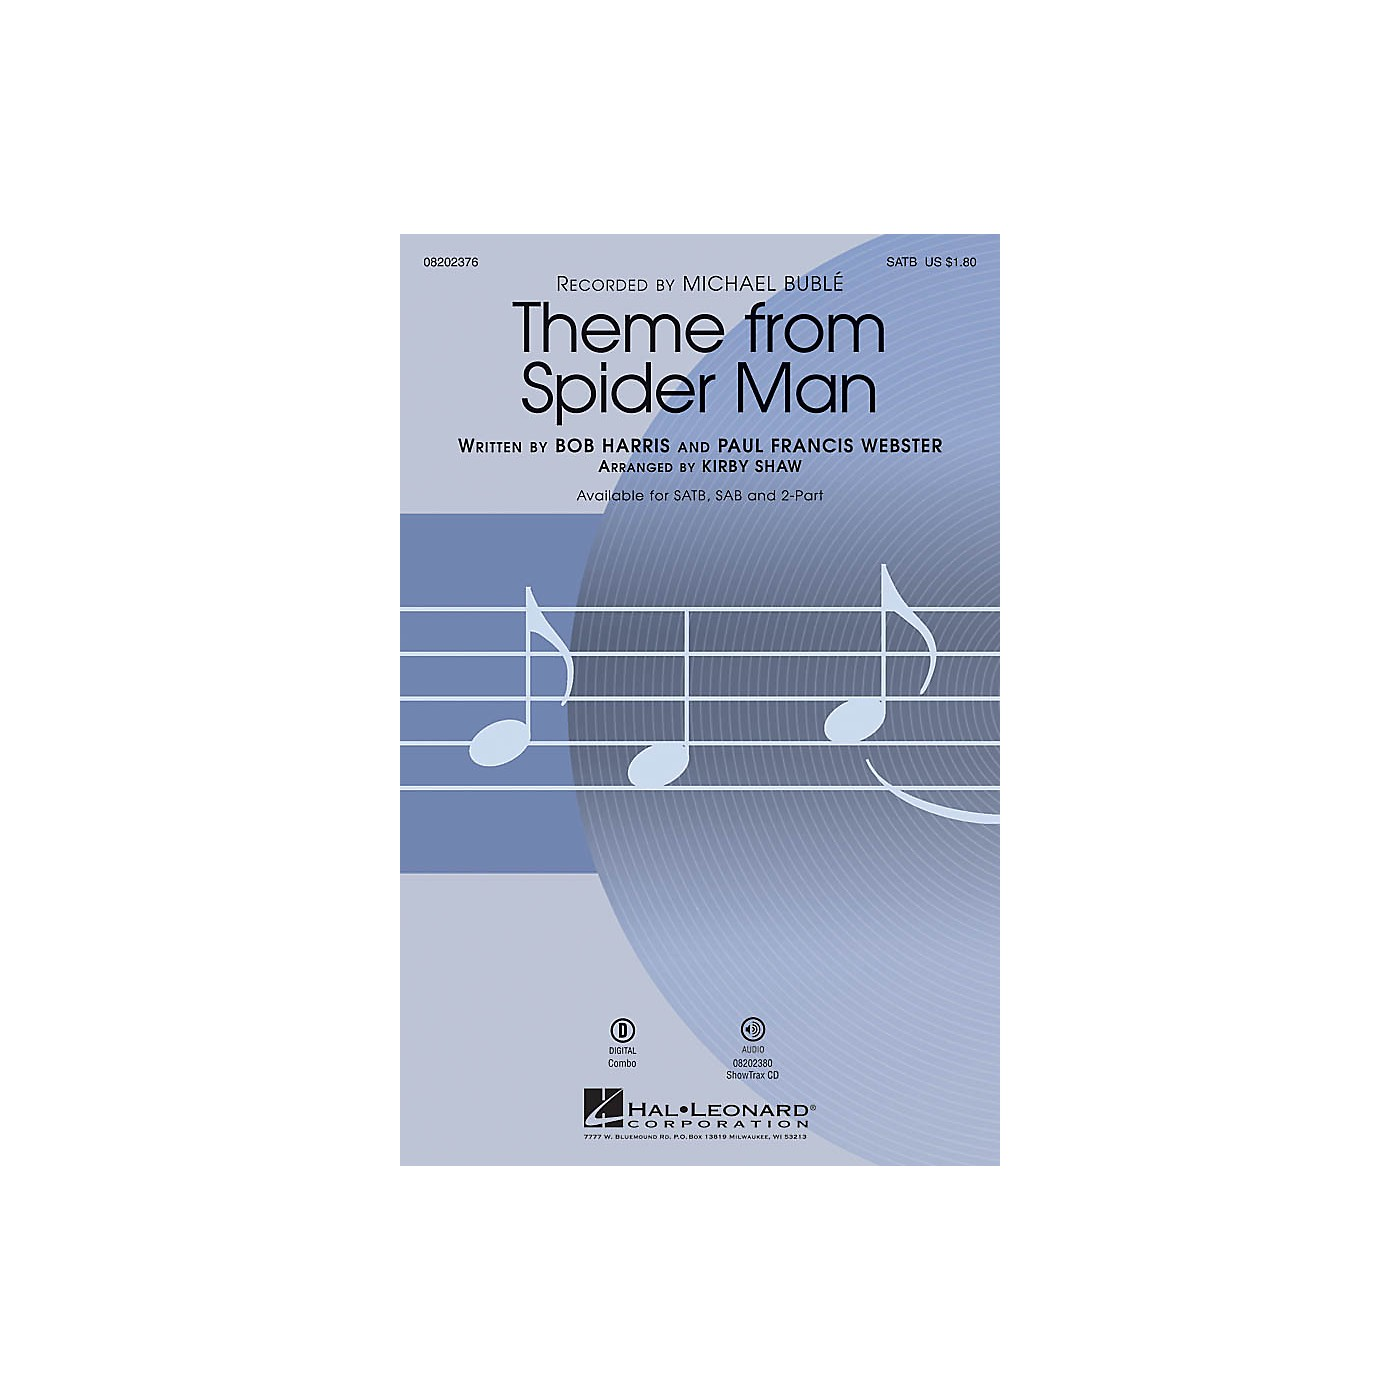 Hal Leonard Theme from Spider Man 2-Part by Michael Bublé Arranged by Kirby Shaw thumbnail